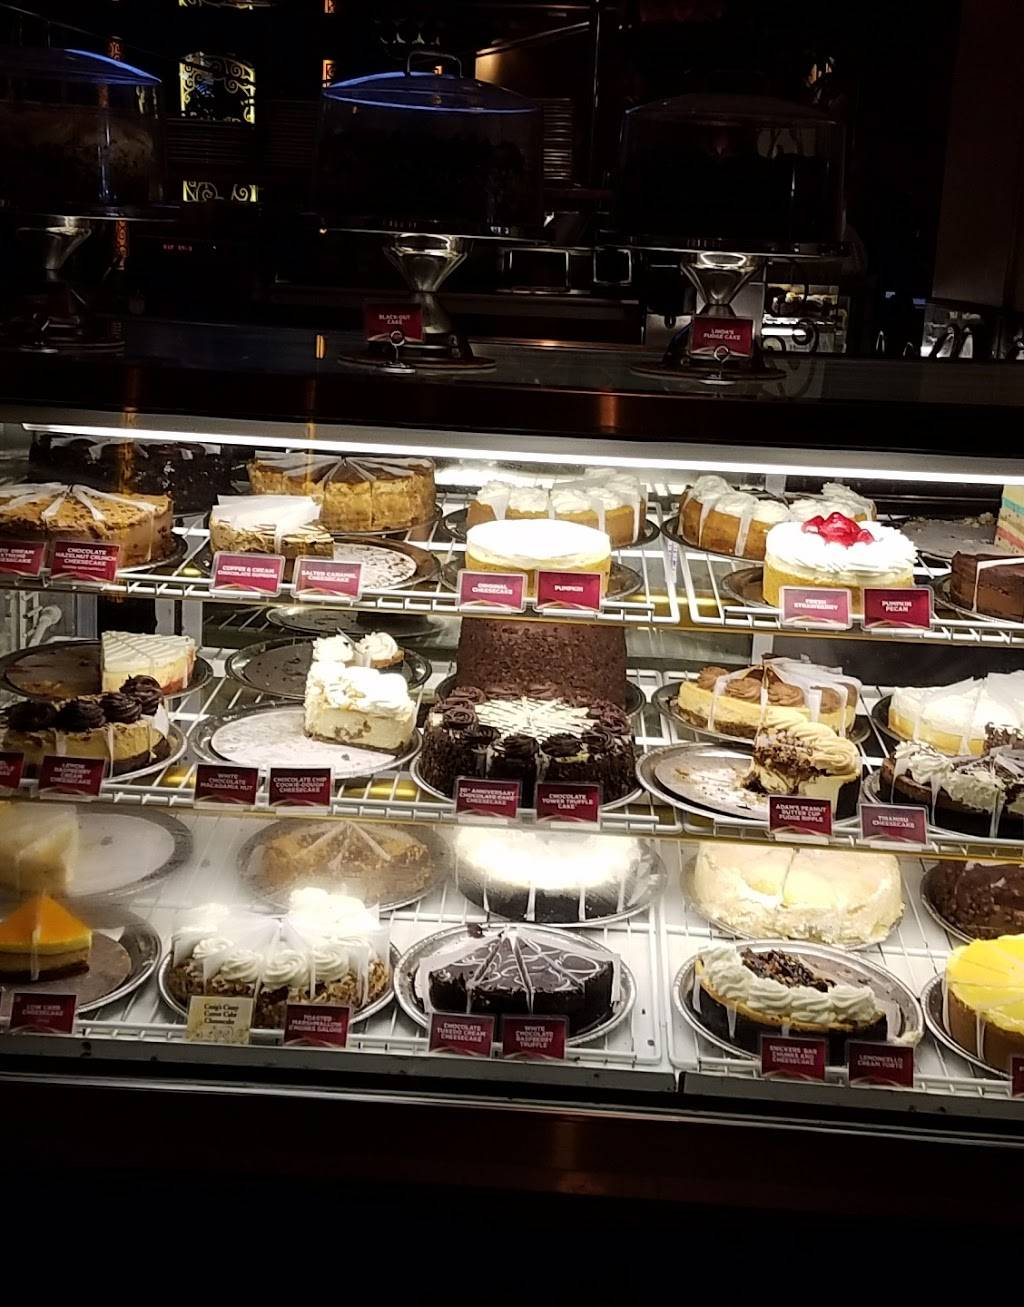 The Cheesecake Factory | restaurant | 640 W Dekalb Pike, King of Prussia, PA 19406, USA | 6103372200 OR +1 610-337-2200